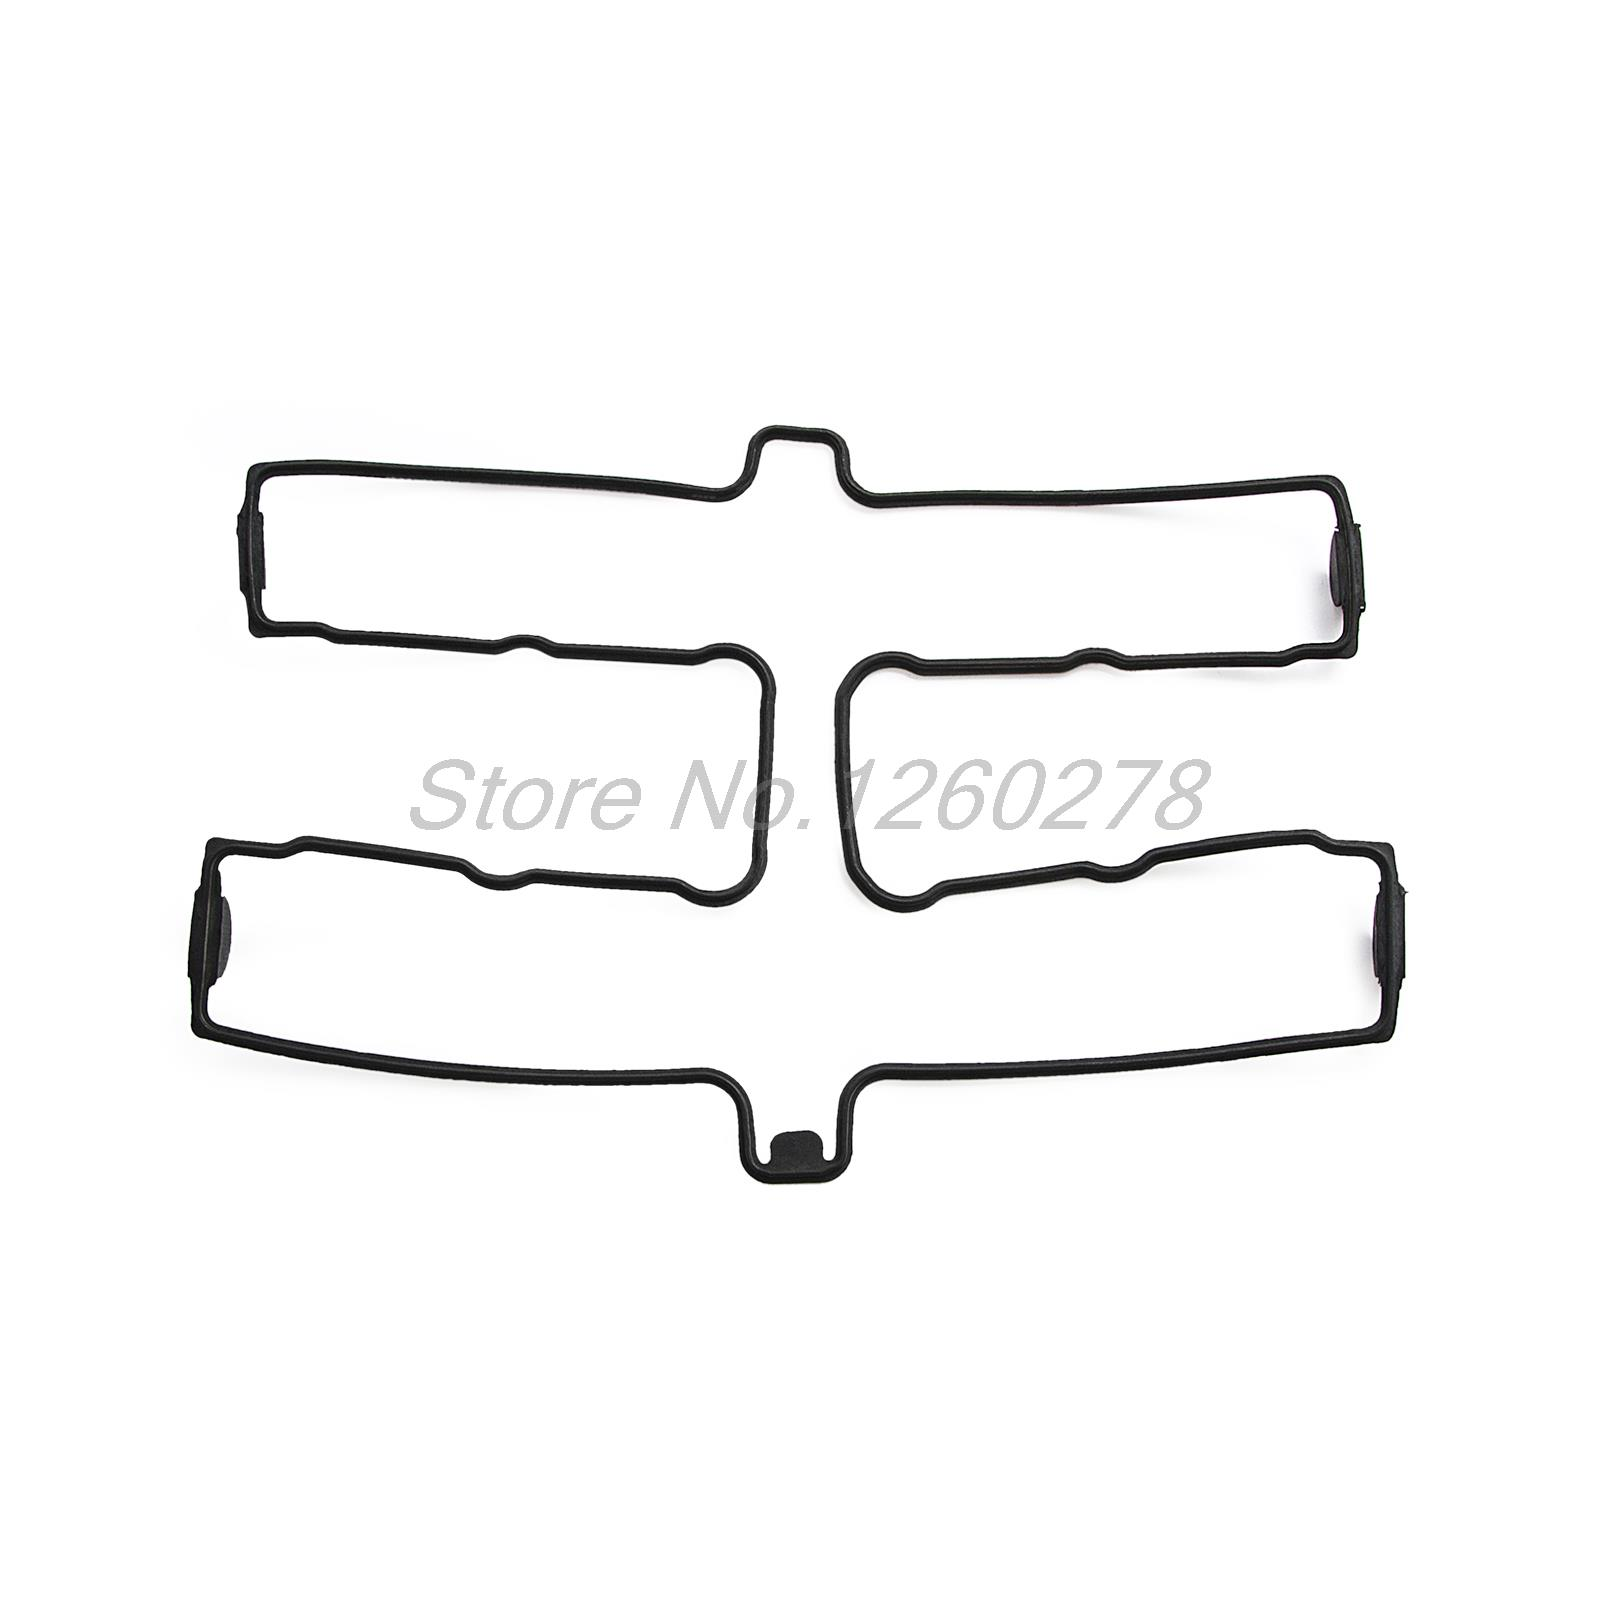 Nicecnc Cylinder Head Cover Gasket For Yamaha Xjr400